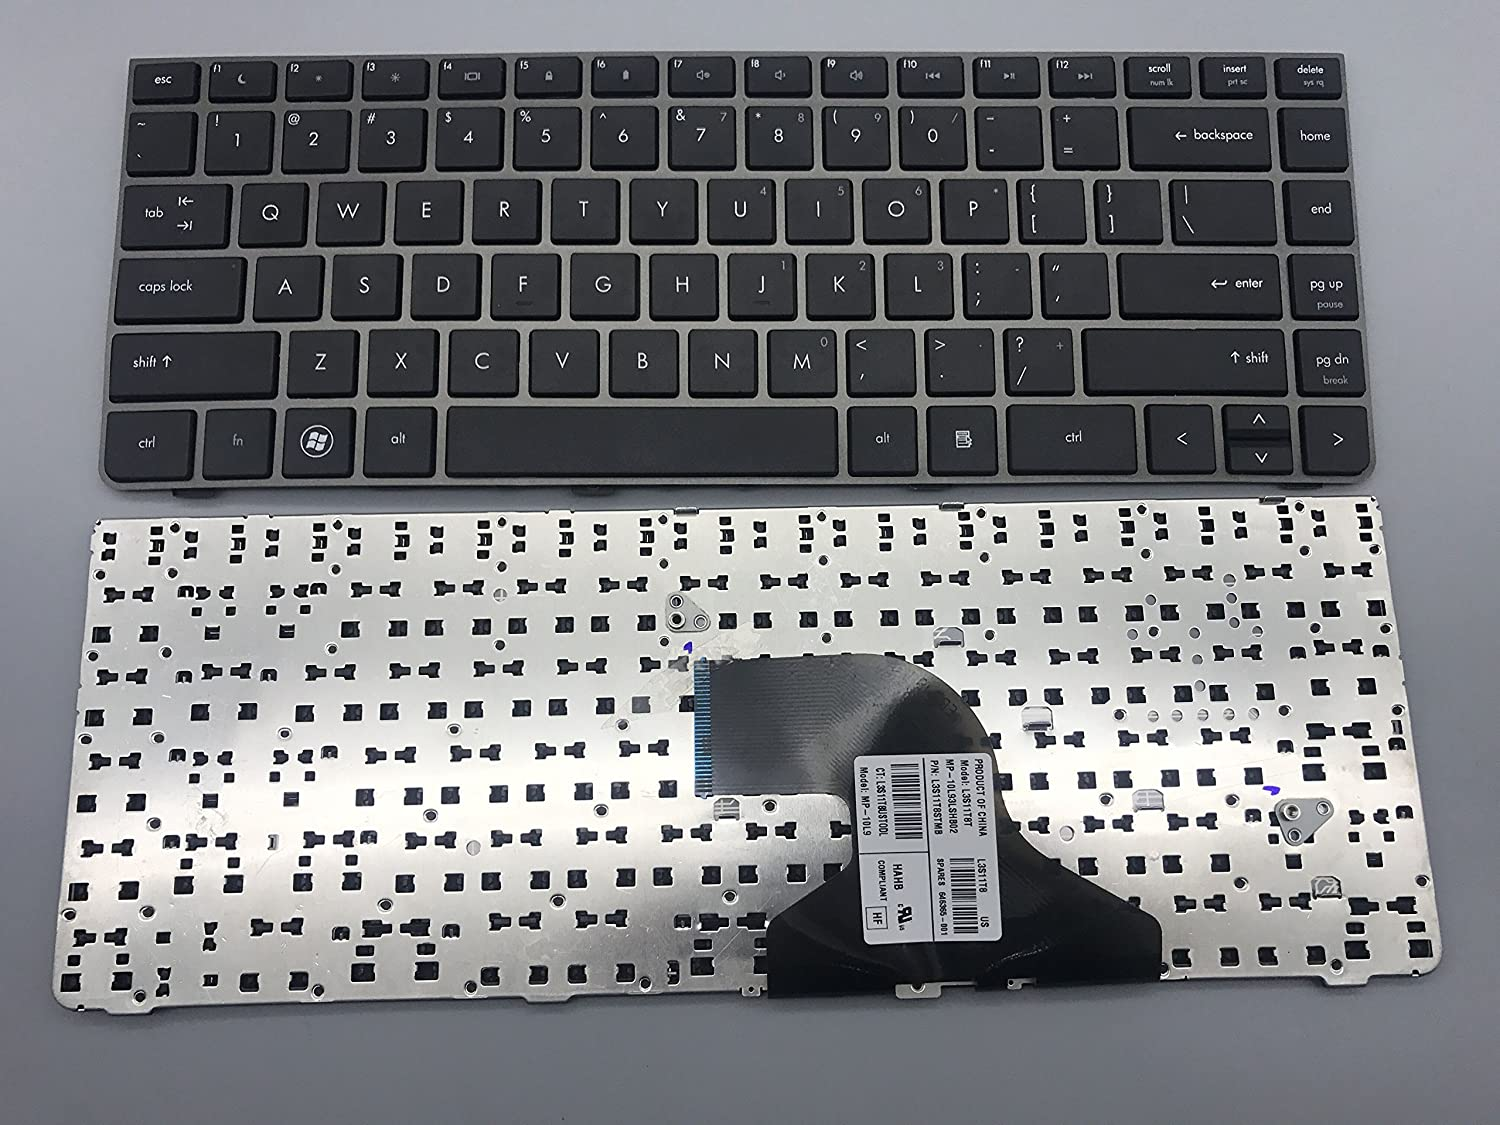 New Keyboard for HP ProBook 4330 4330S 4331S 4430s 4431s 4435s 4436s Series US Layout P/N: L3S11T8T MP-10L93LSHB02 L3S11T8STMB Gray Frame Black keycap